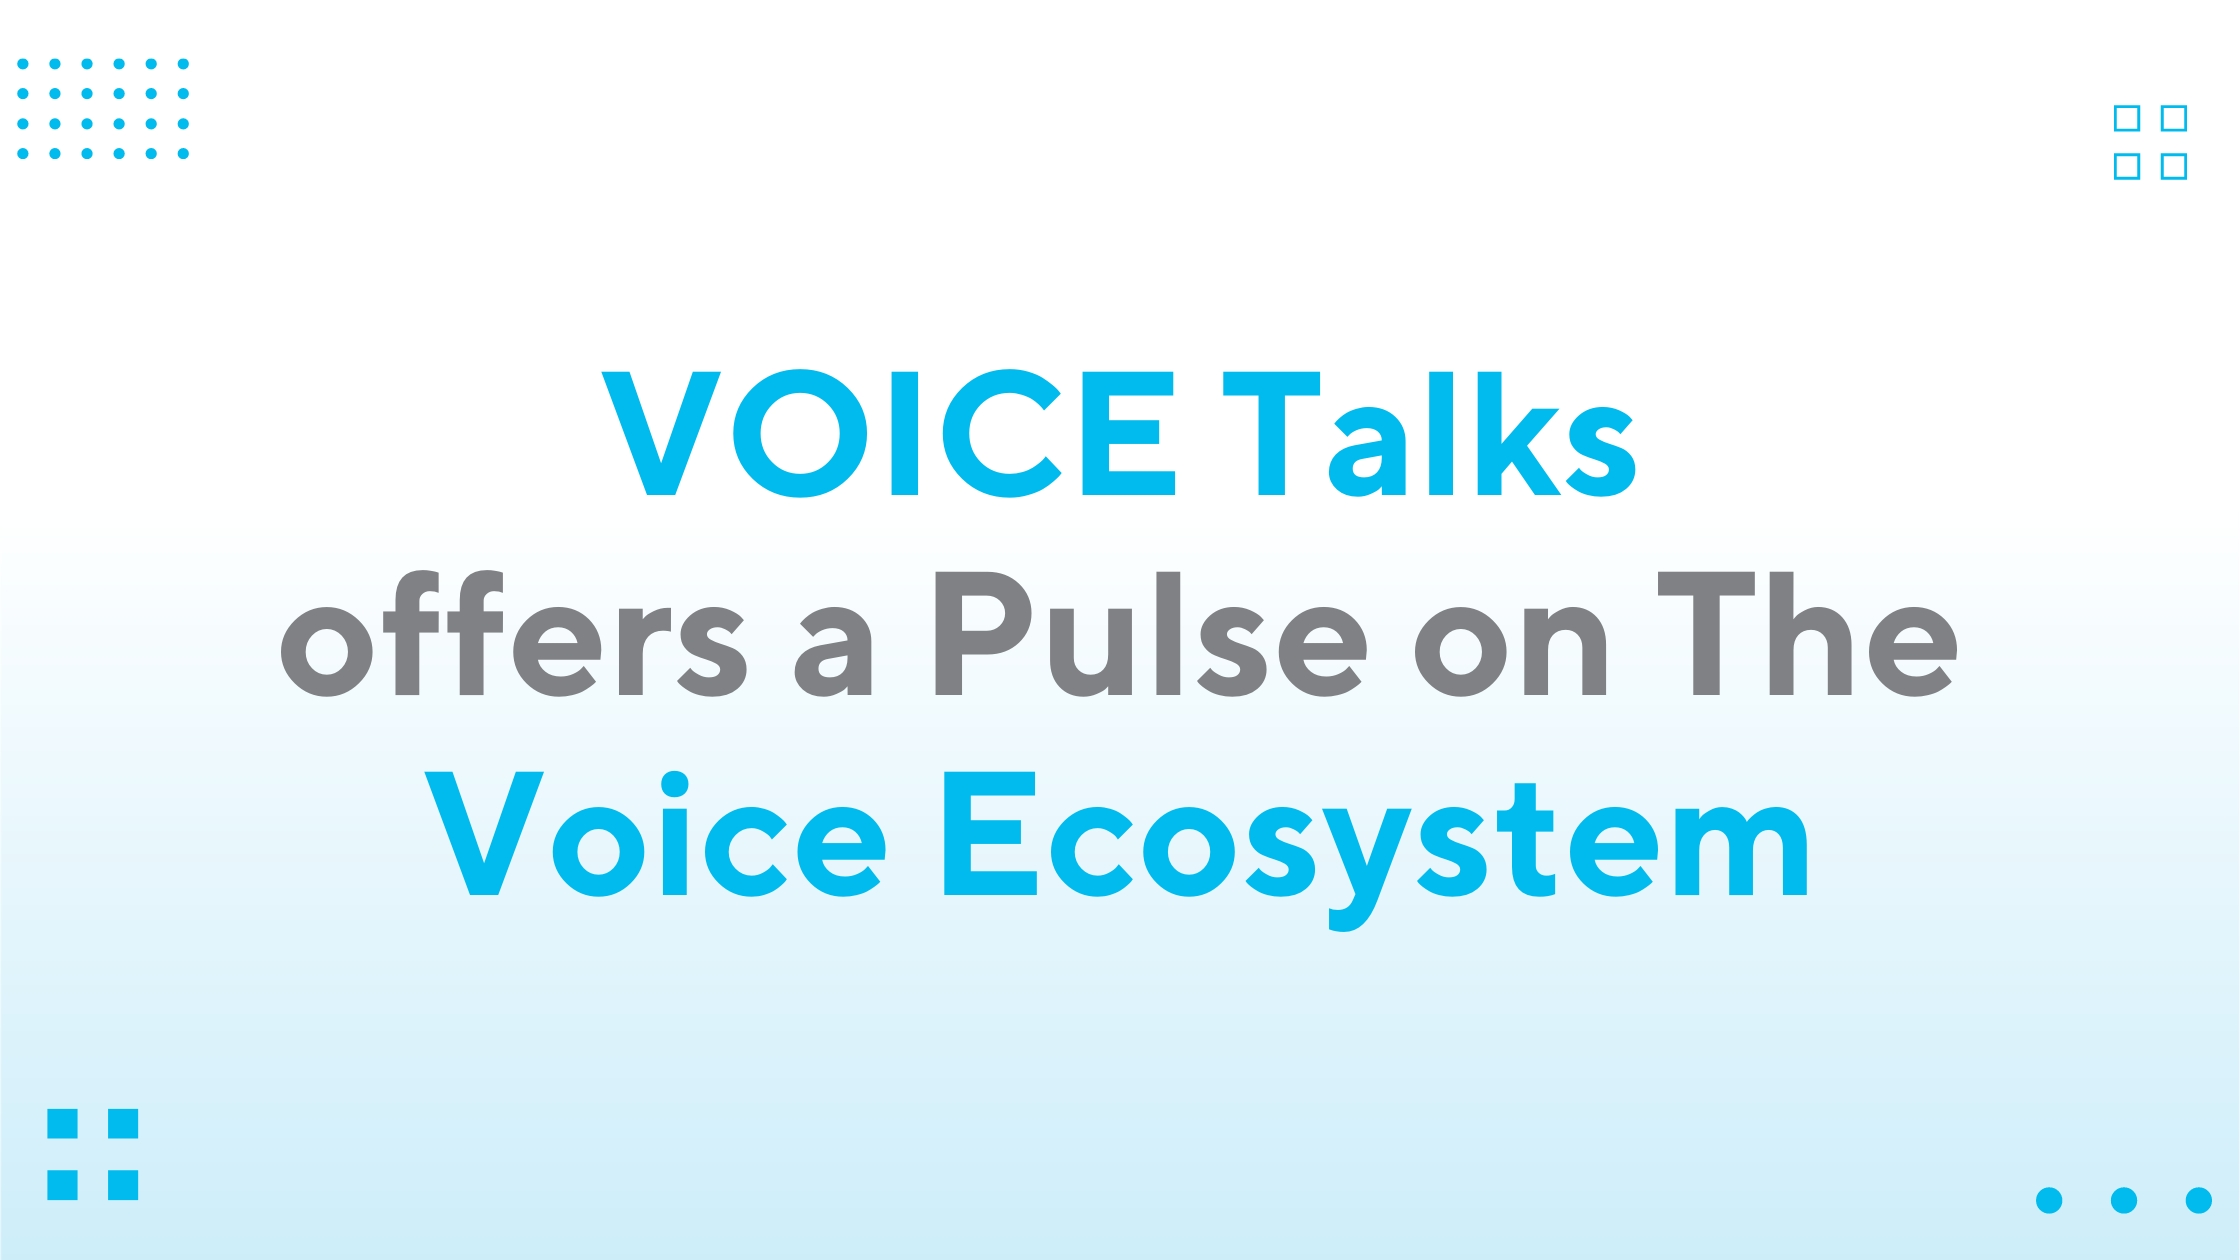 VOICE Talks Offers a Pulse on The Voice Ecosystem